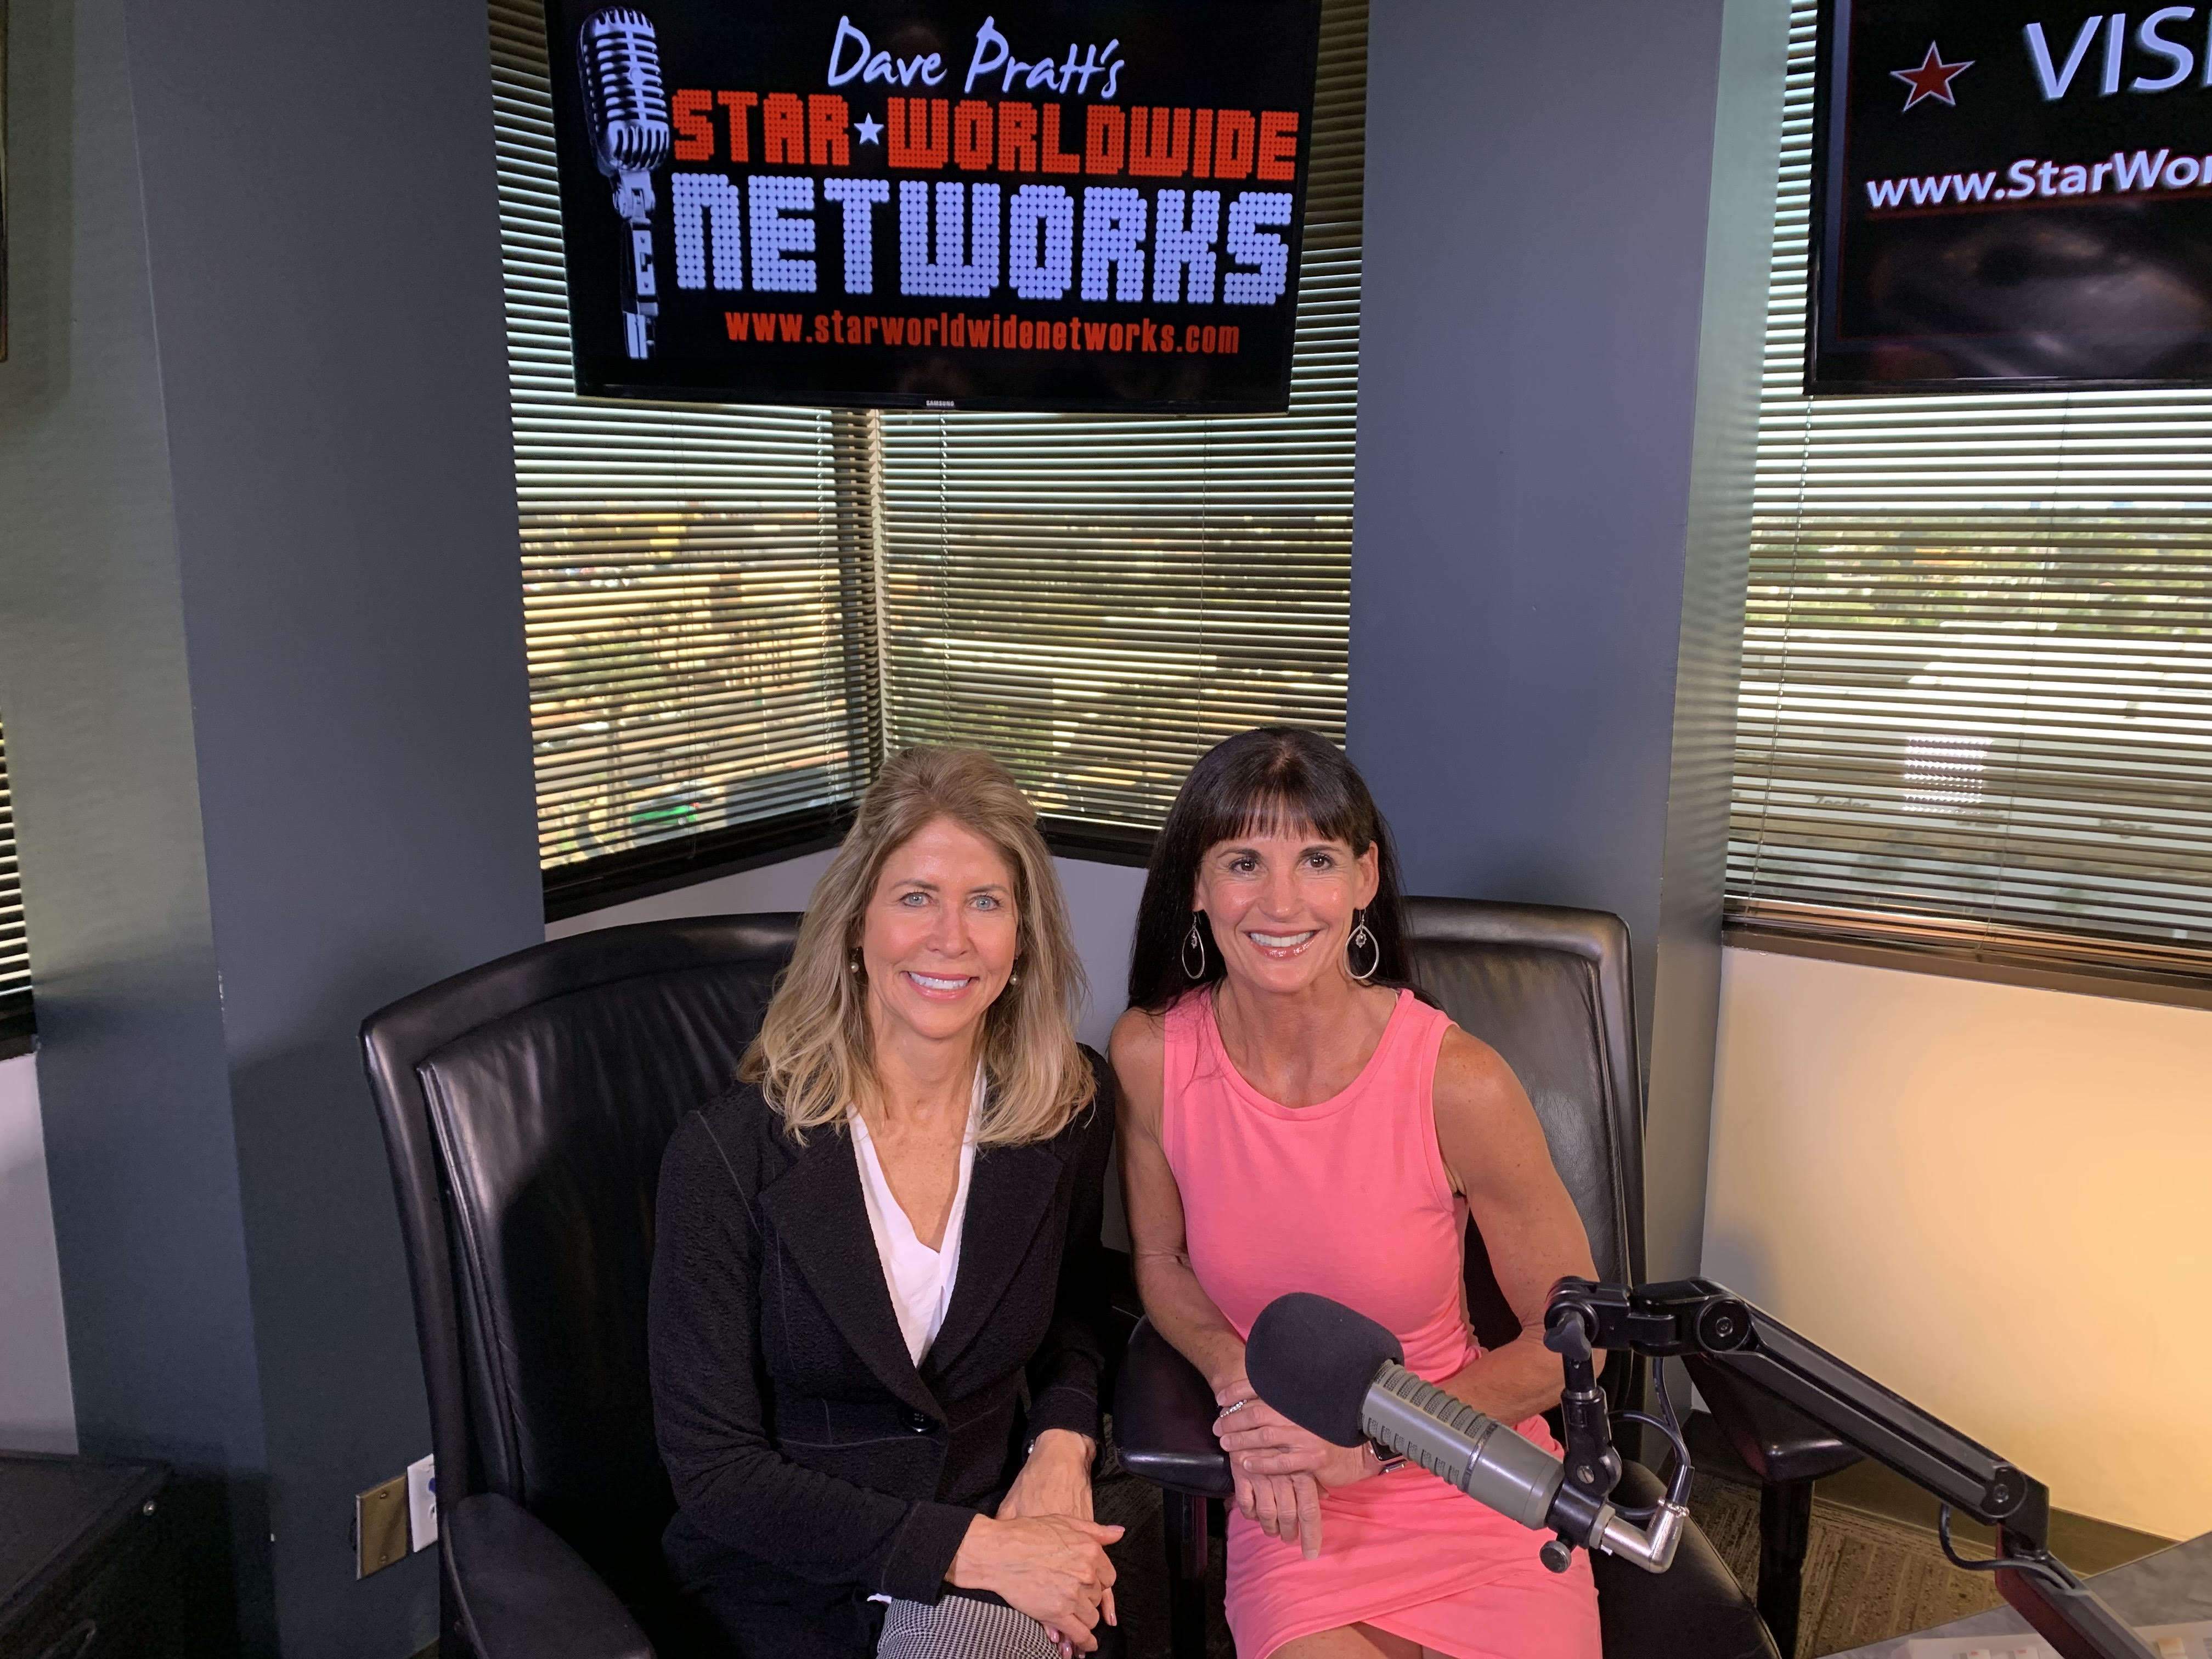 Meet Lori Coruccini and Julie Plummer from Know Your Talents in Scottsdale.